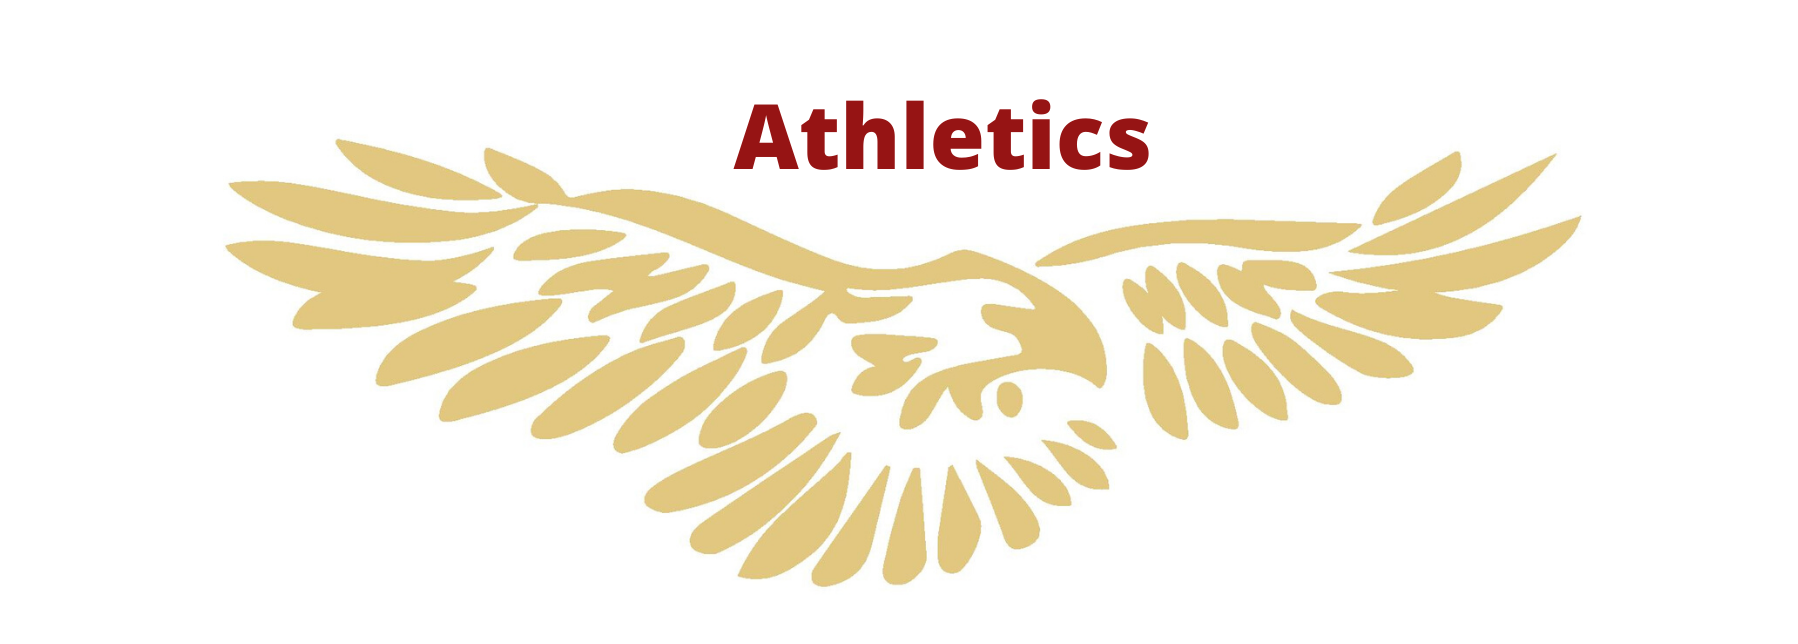 Eagles mascot for Saint Thomas More School Athletics